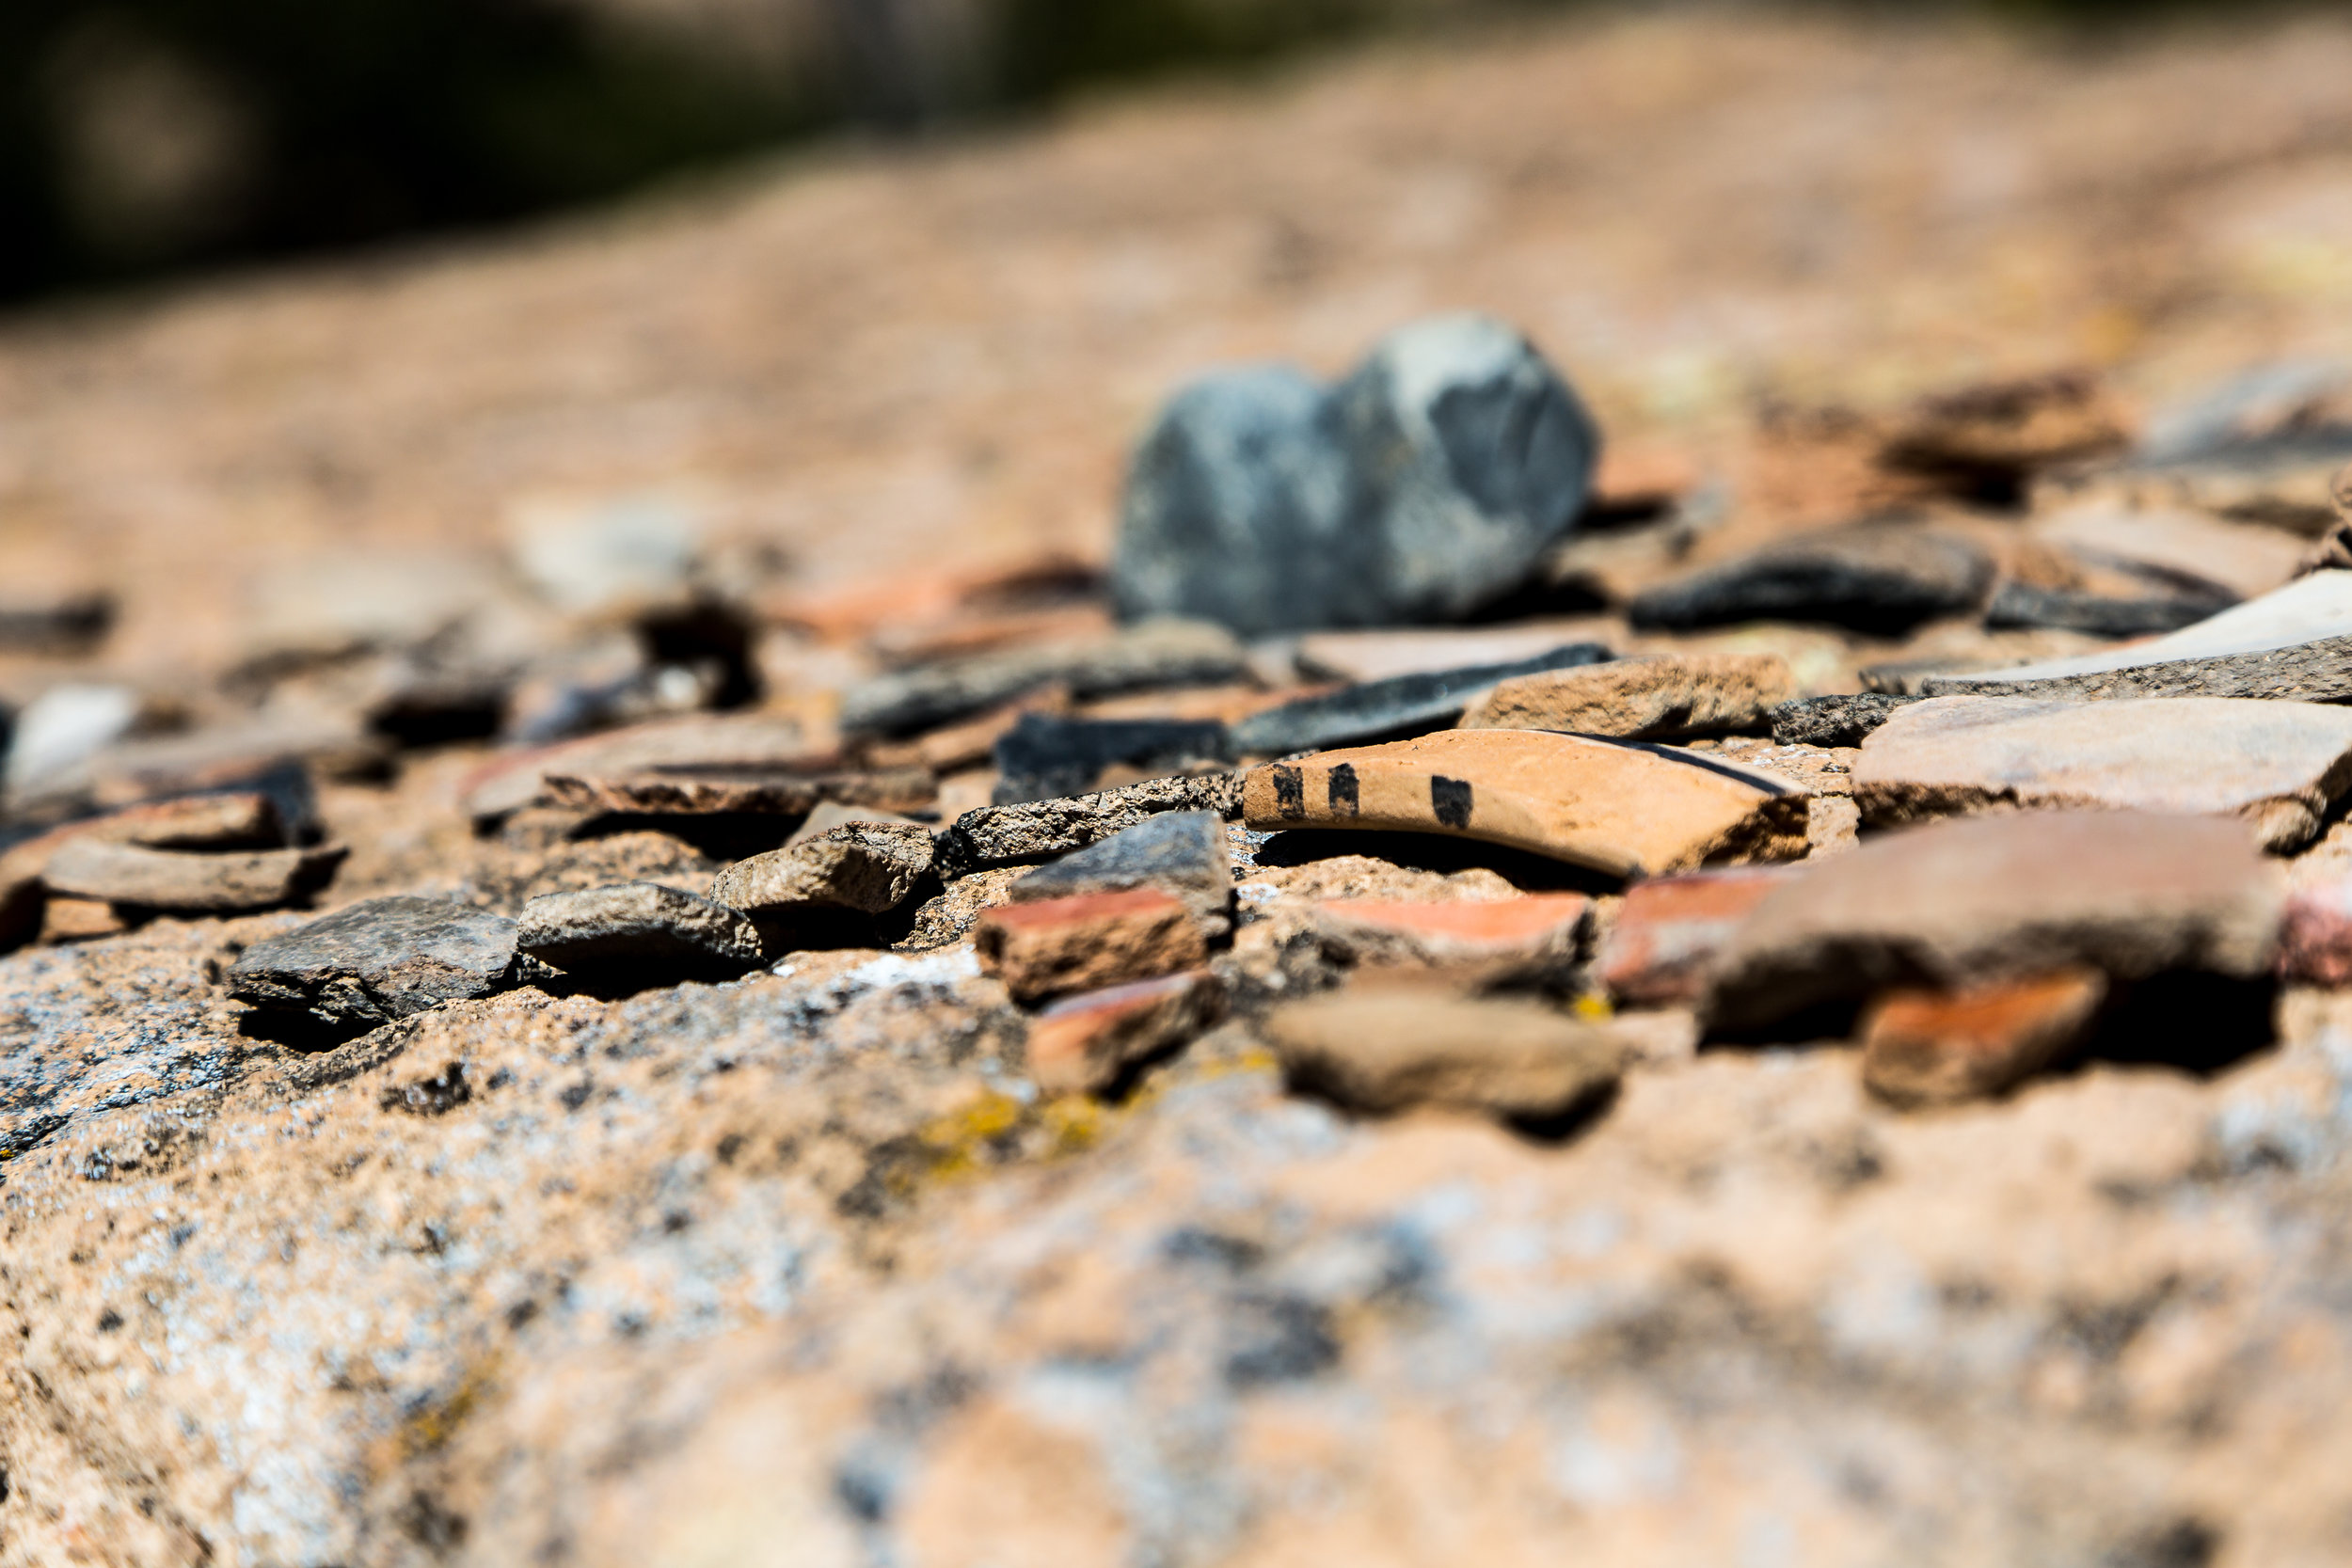 The guides at Puye intentionally collect sherds, obsidian, and other artifacts and place them in piles along the trail for visitors to view.